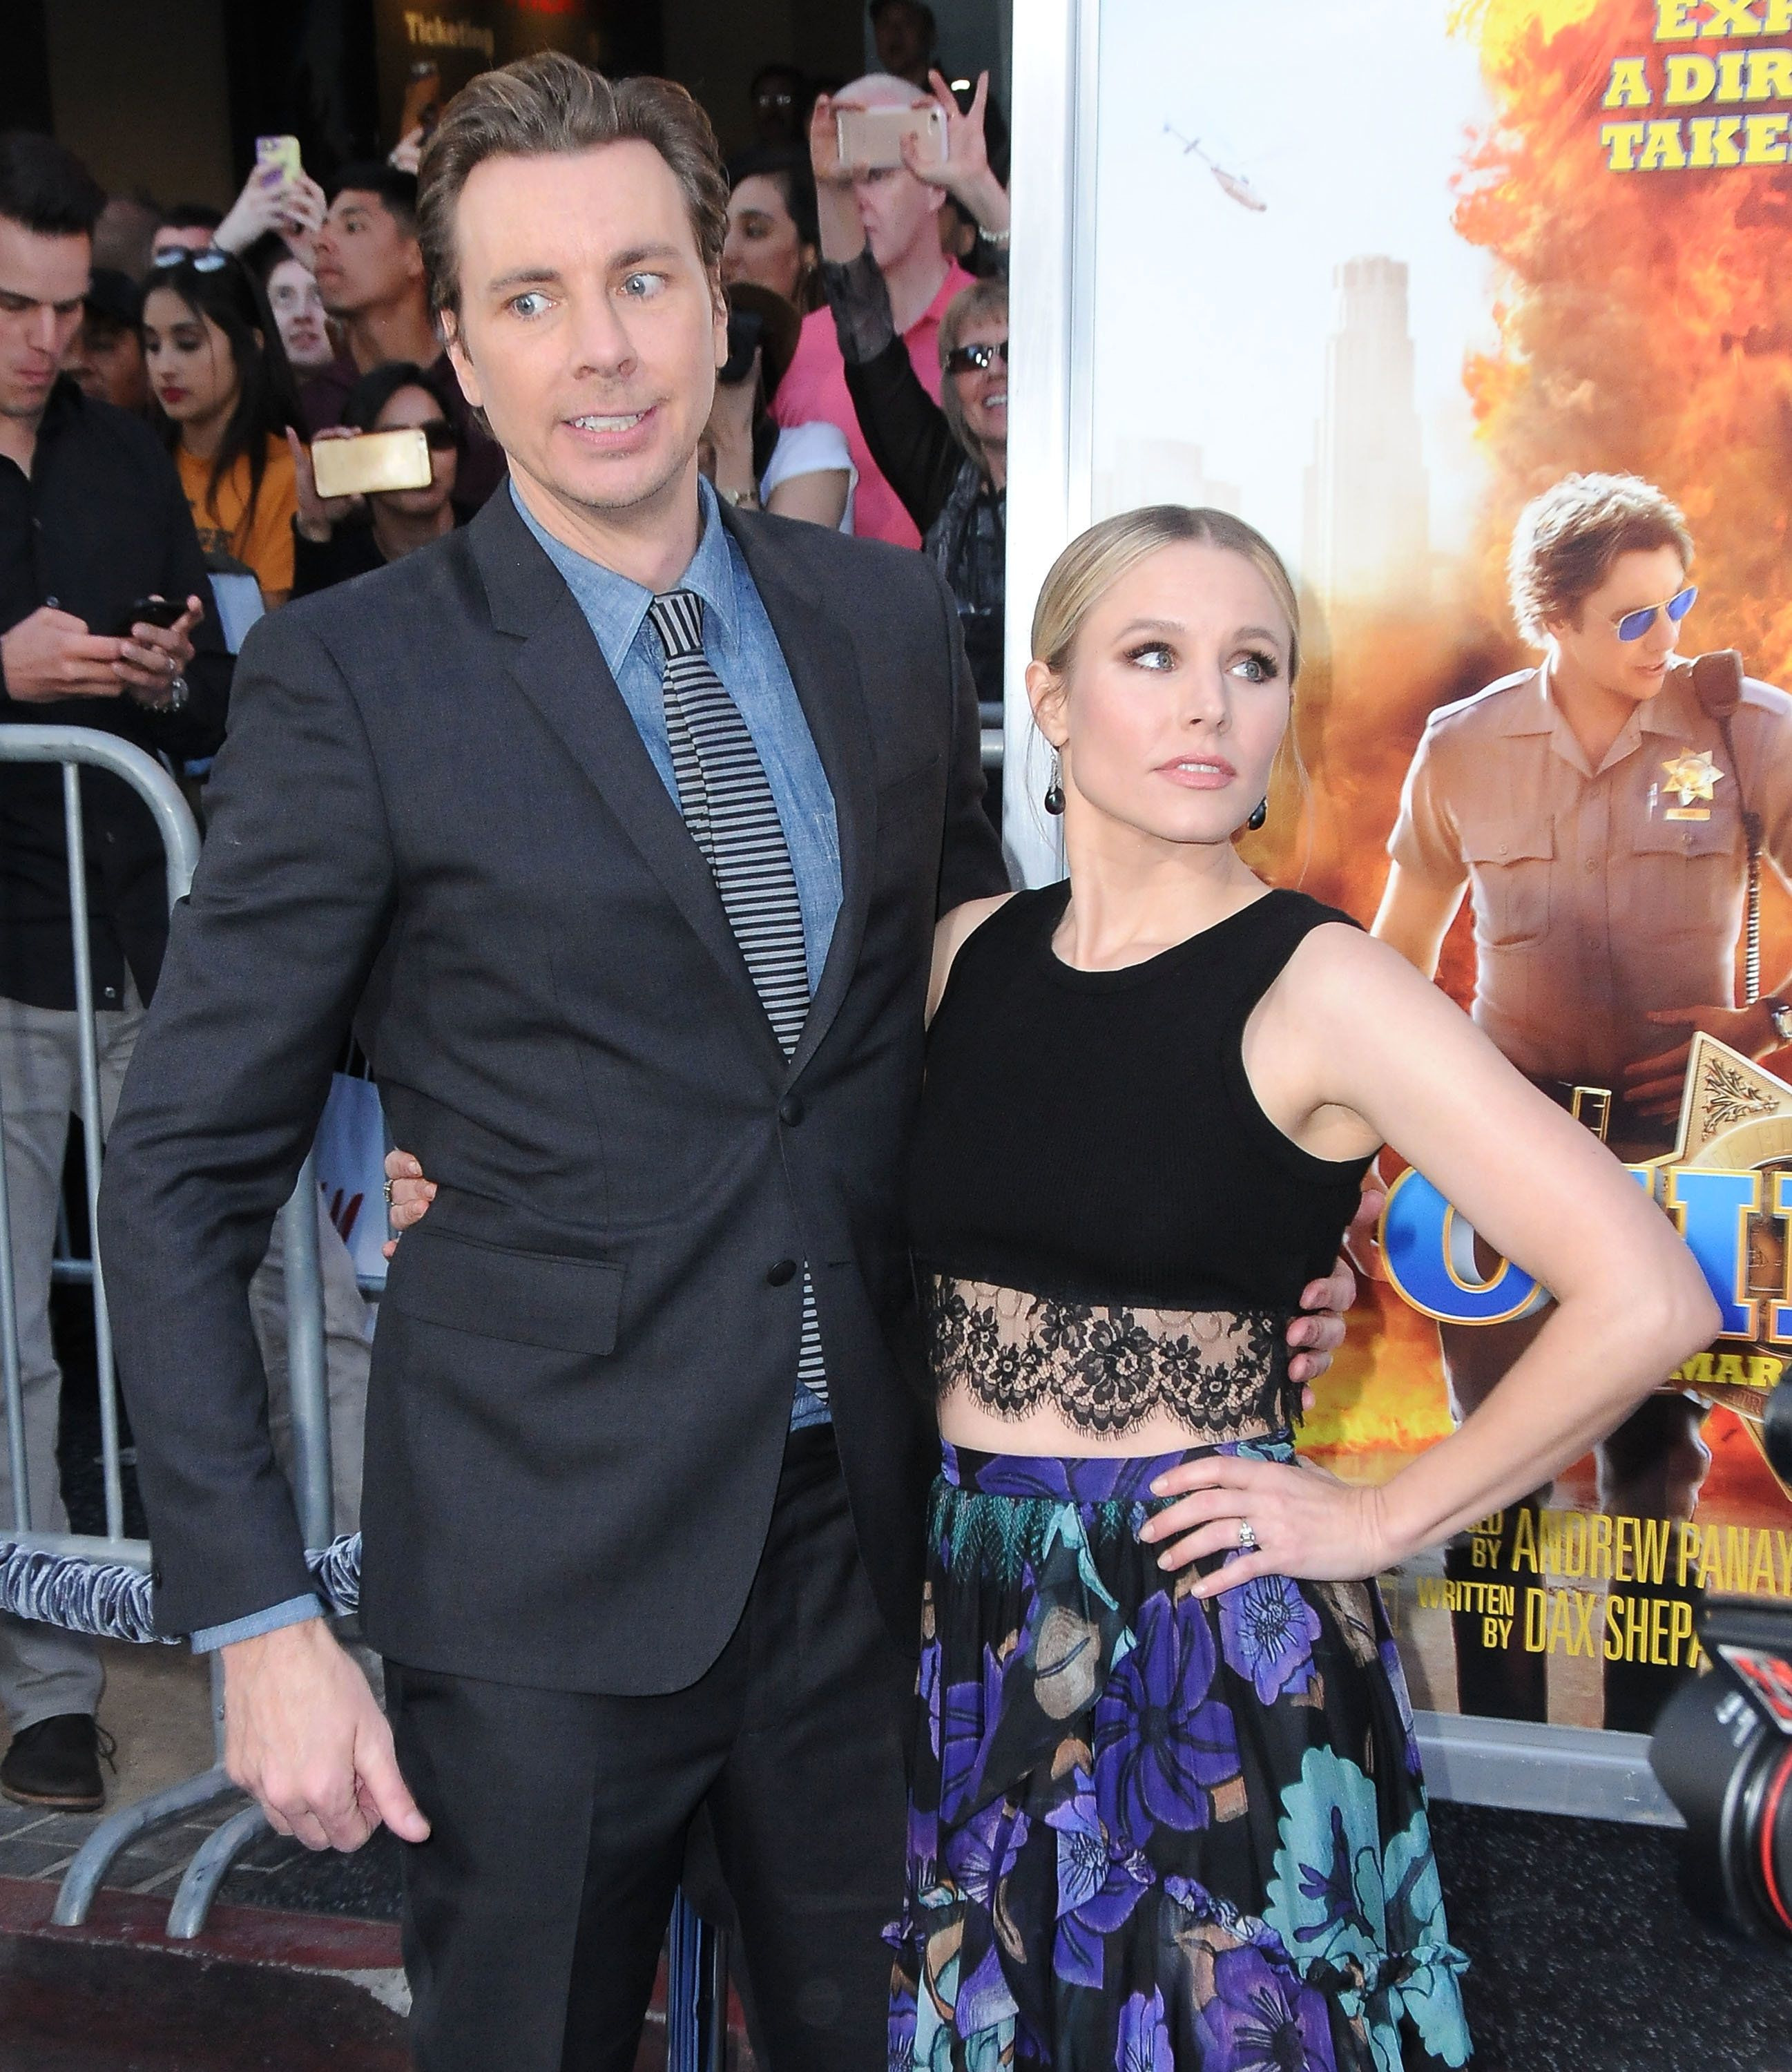 HOLLYWOOD, CA - MARCH 20:  (L-R) Director/writer/executive producer Dax Shepard and actress Kristen Bell arrive at the premiere of Warner Bros. Pictures' 'CHiPS' at TCL Chinese Theatre on March 20, 2017 in Hollywood, California.  (Photo by Barry King/Getty Images)